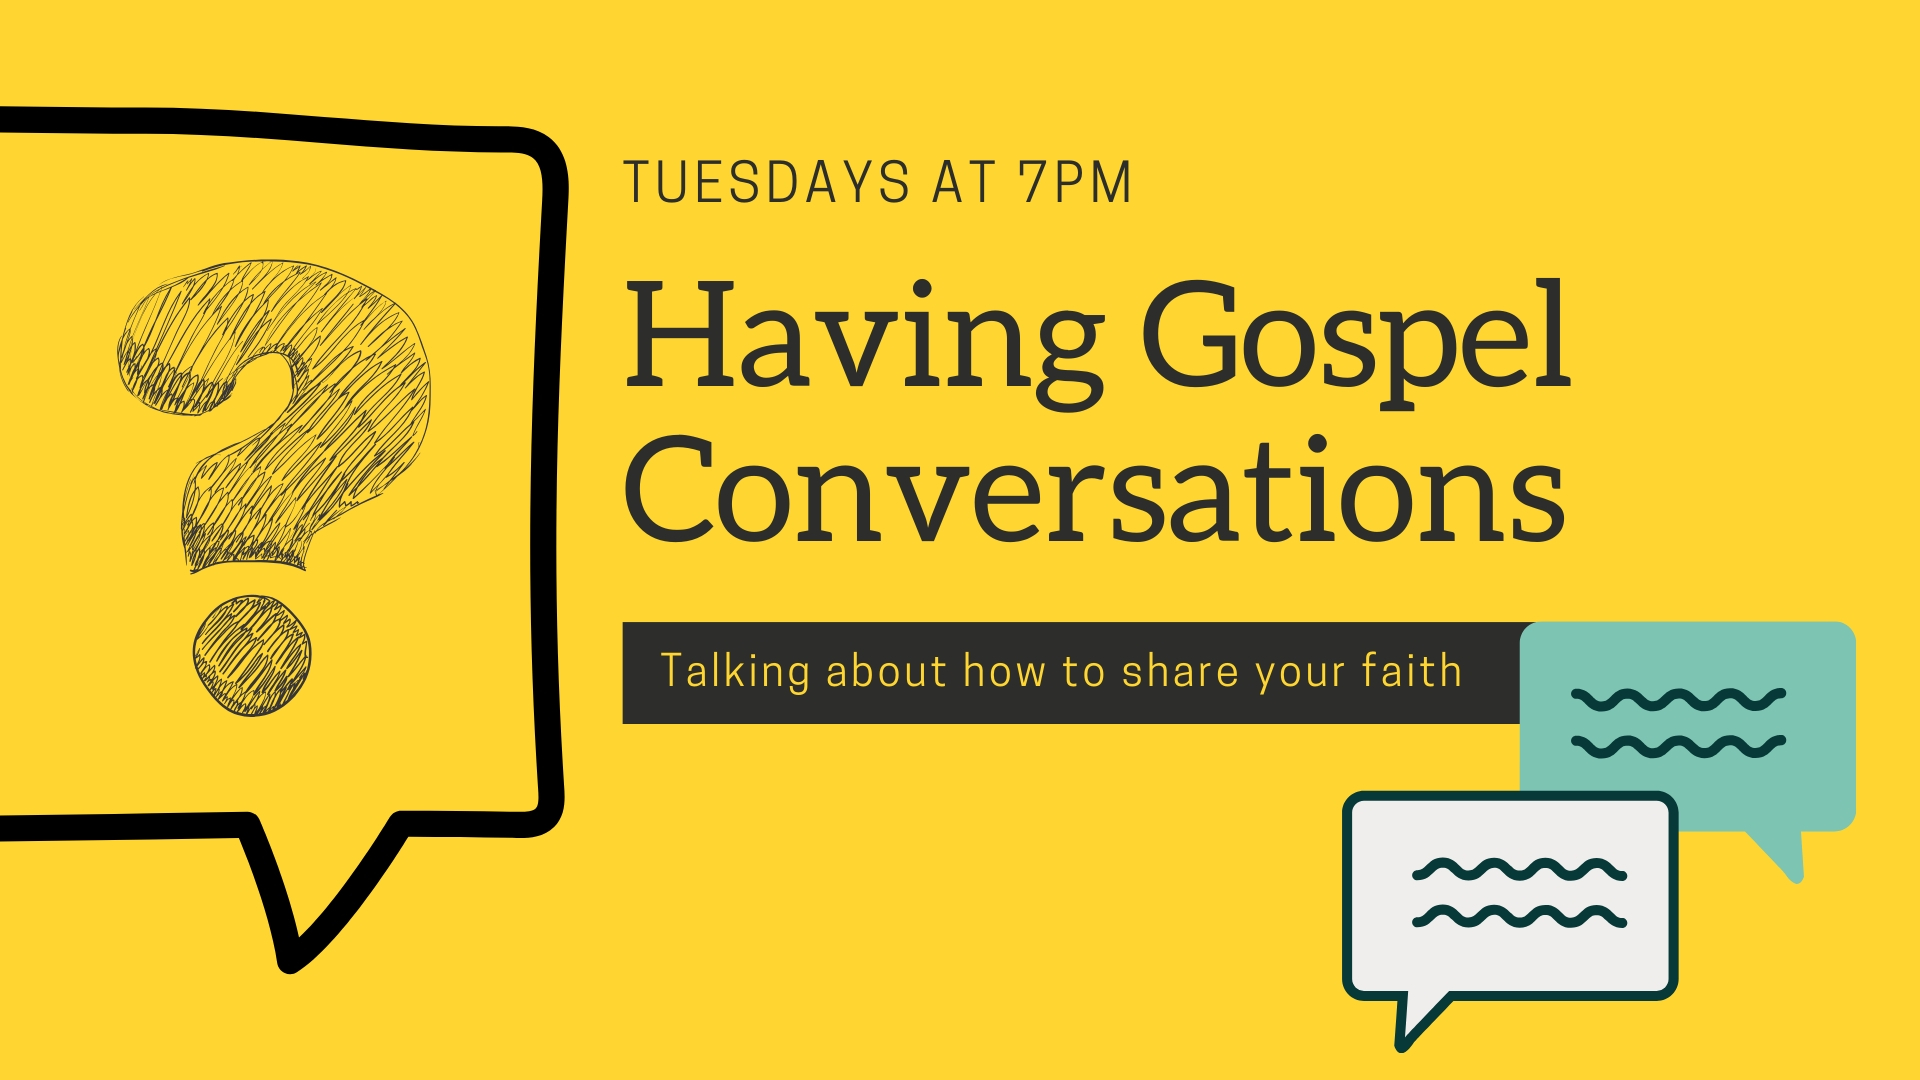 Having Gospel Conversations - Week 4 Image